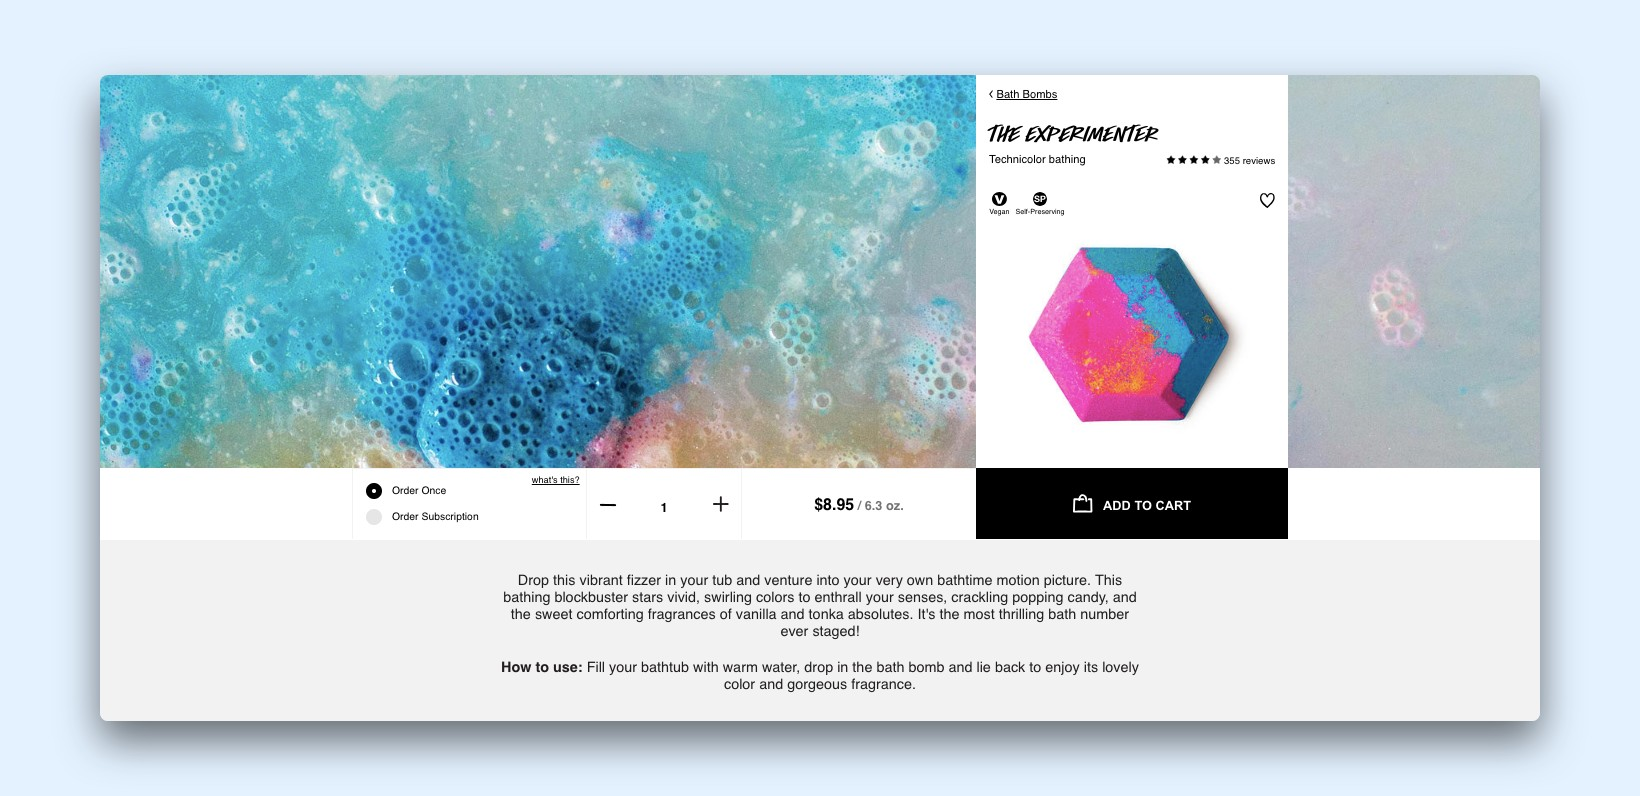 Product details for The Experimenter bath bomb by Lush